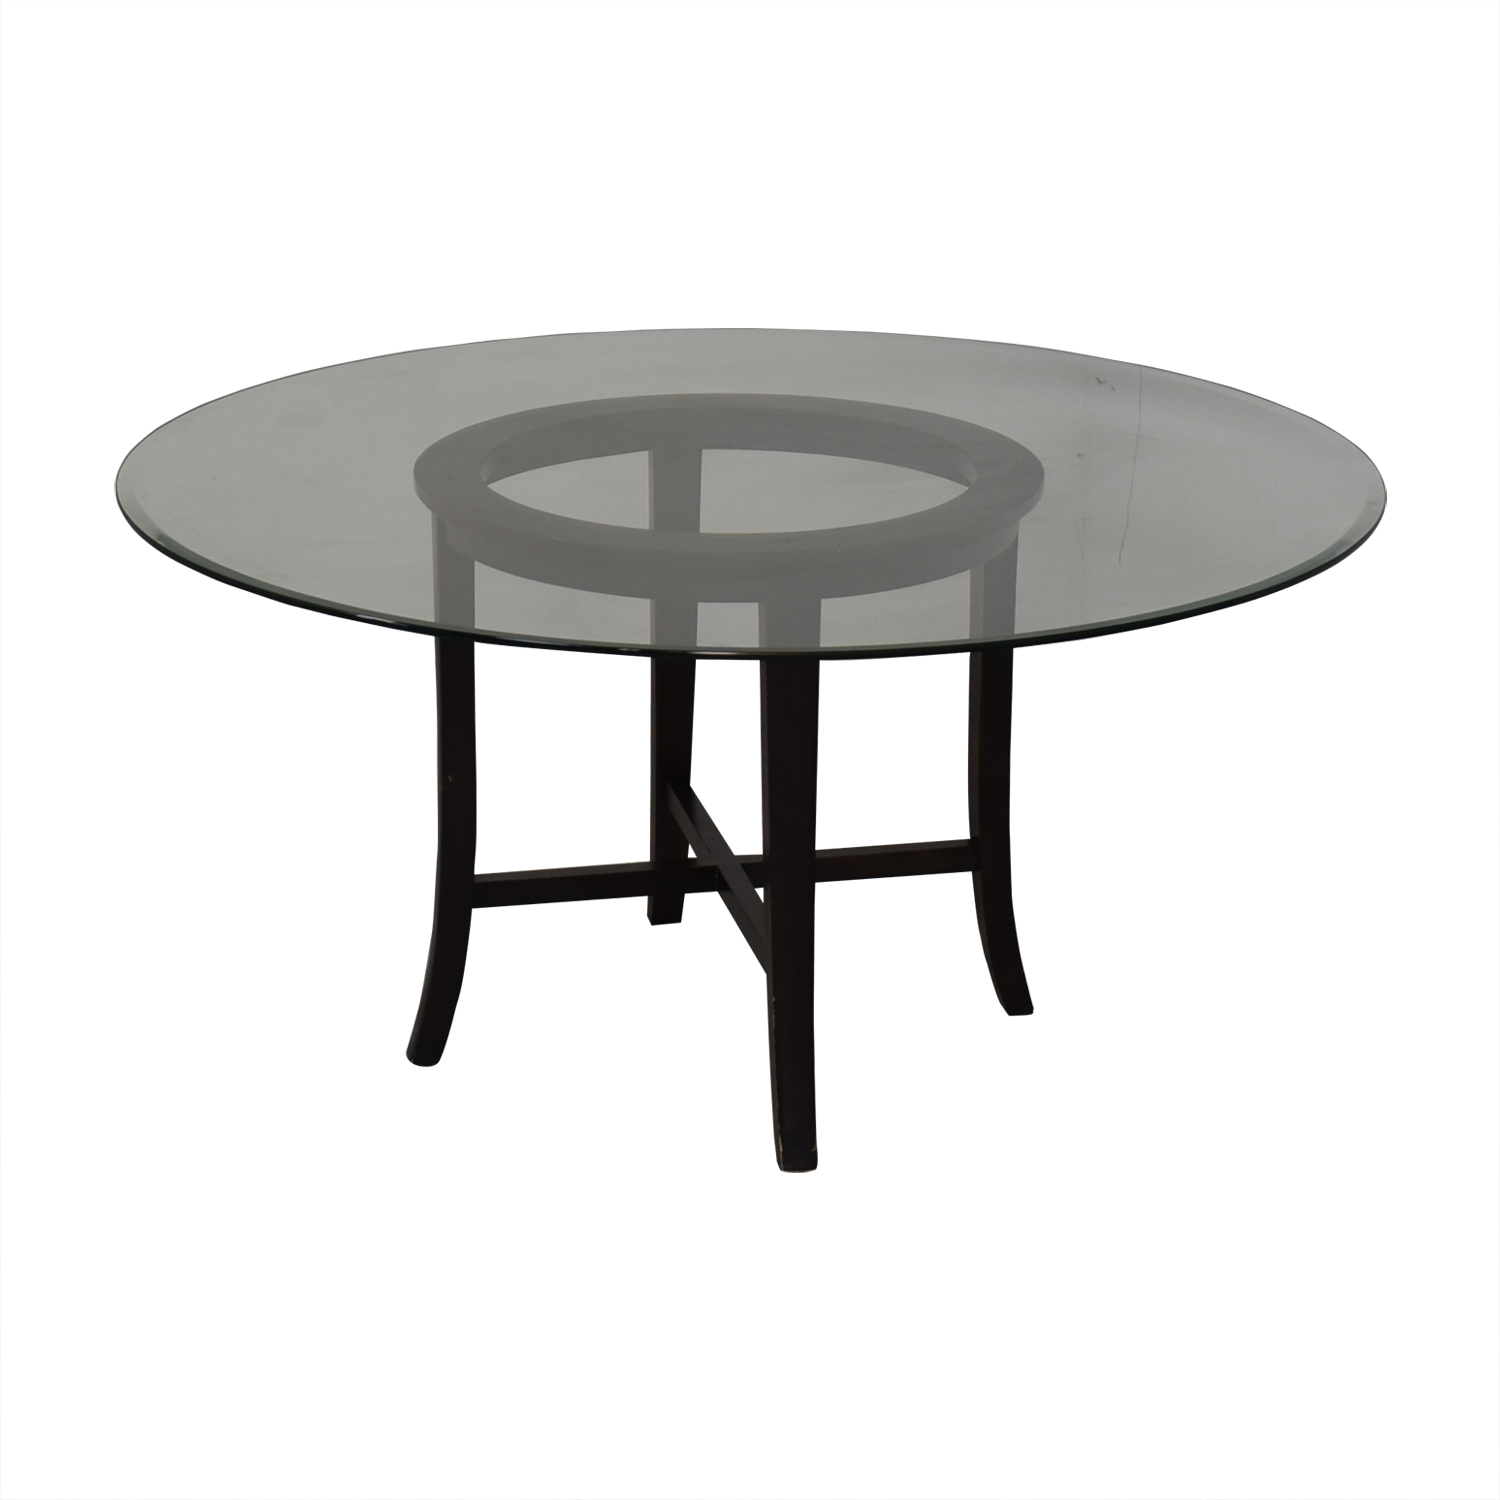 buy Crate & Barrel Halo Ebony Round Dining Table with Glass Top Crate & Barrel Tables